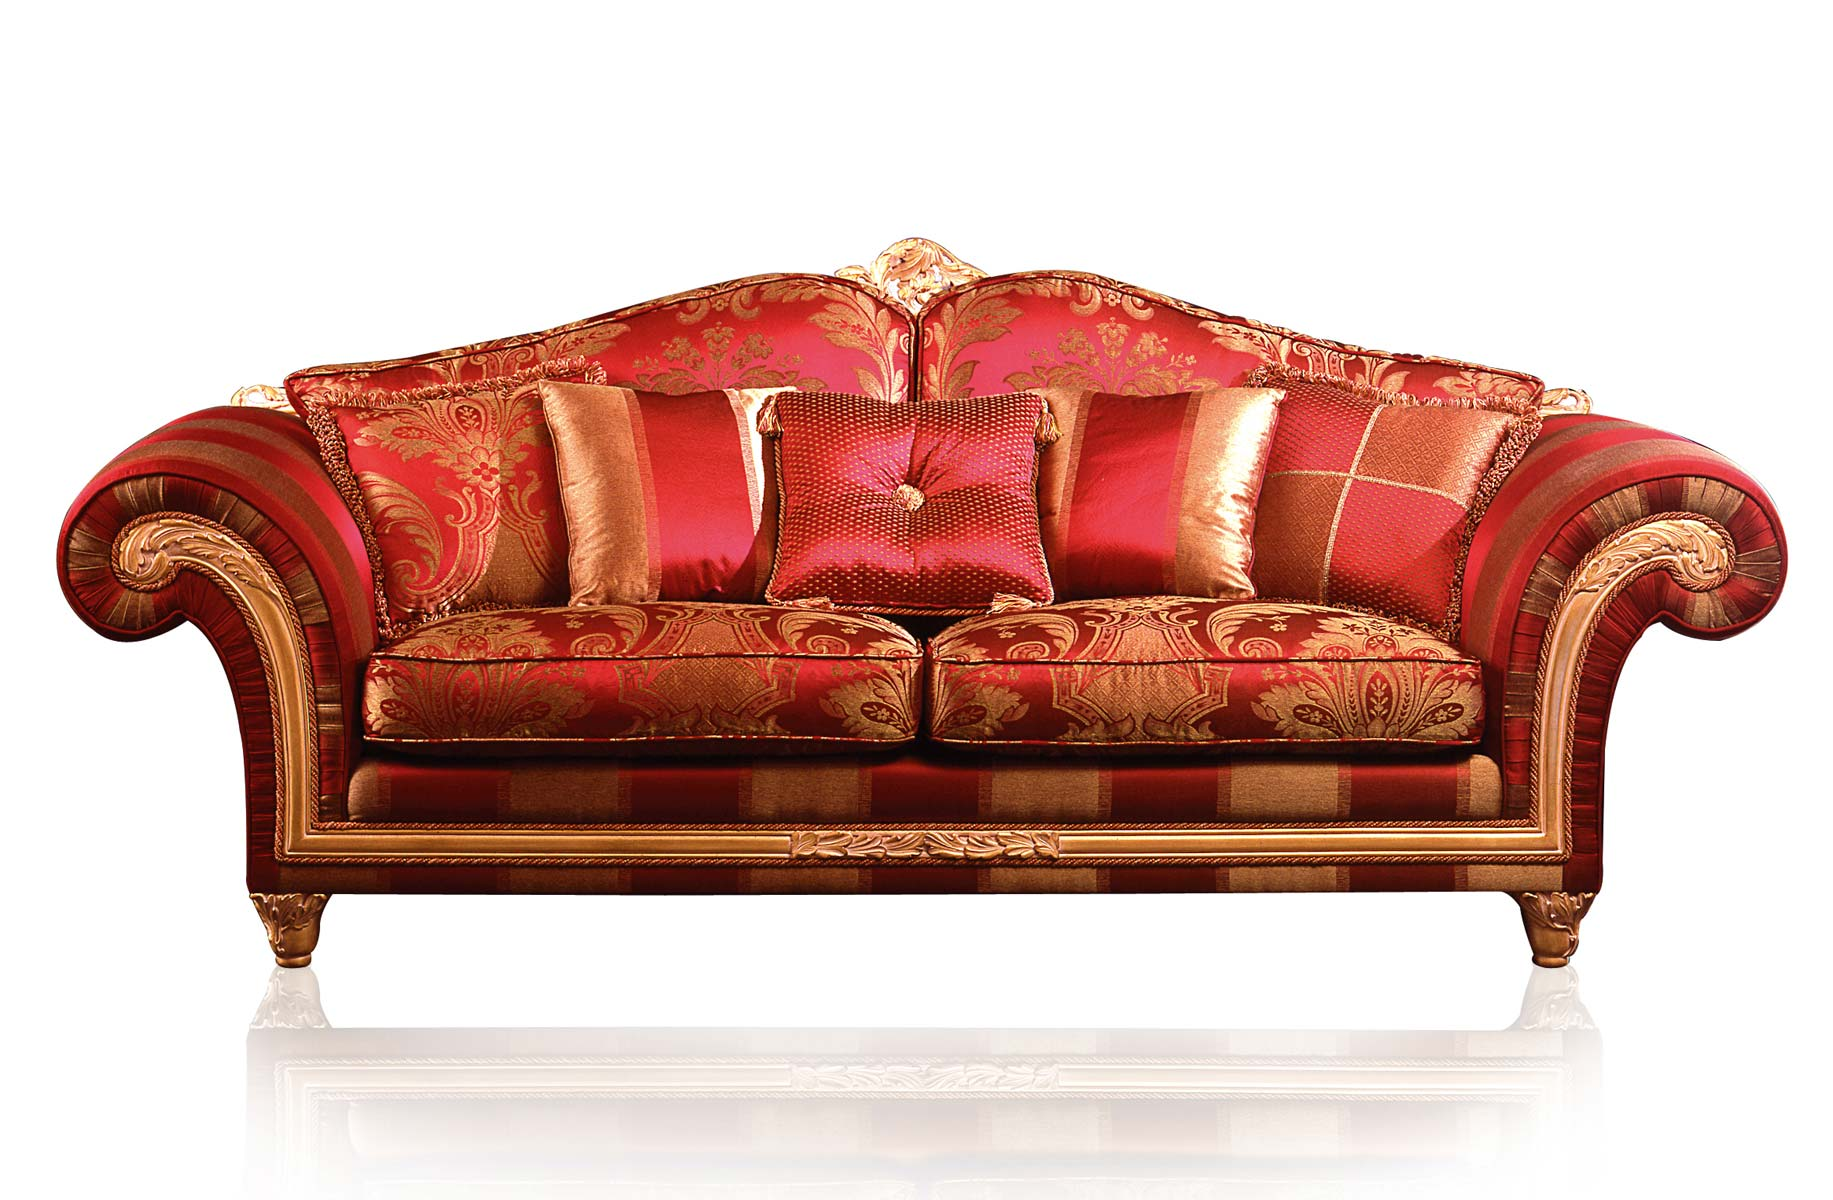 Luxury classic sofa and armchairs imperial by vimercati for Furniture design sofa